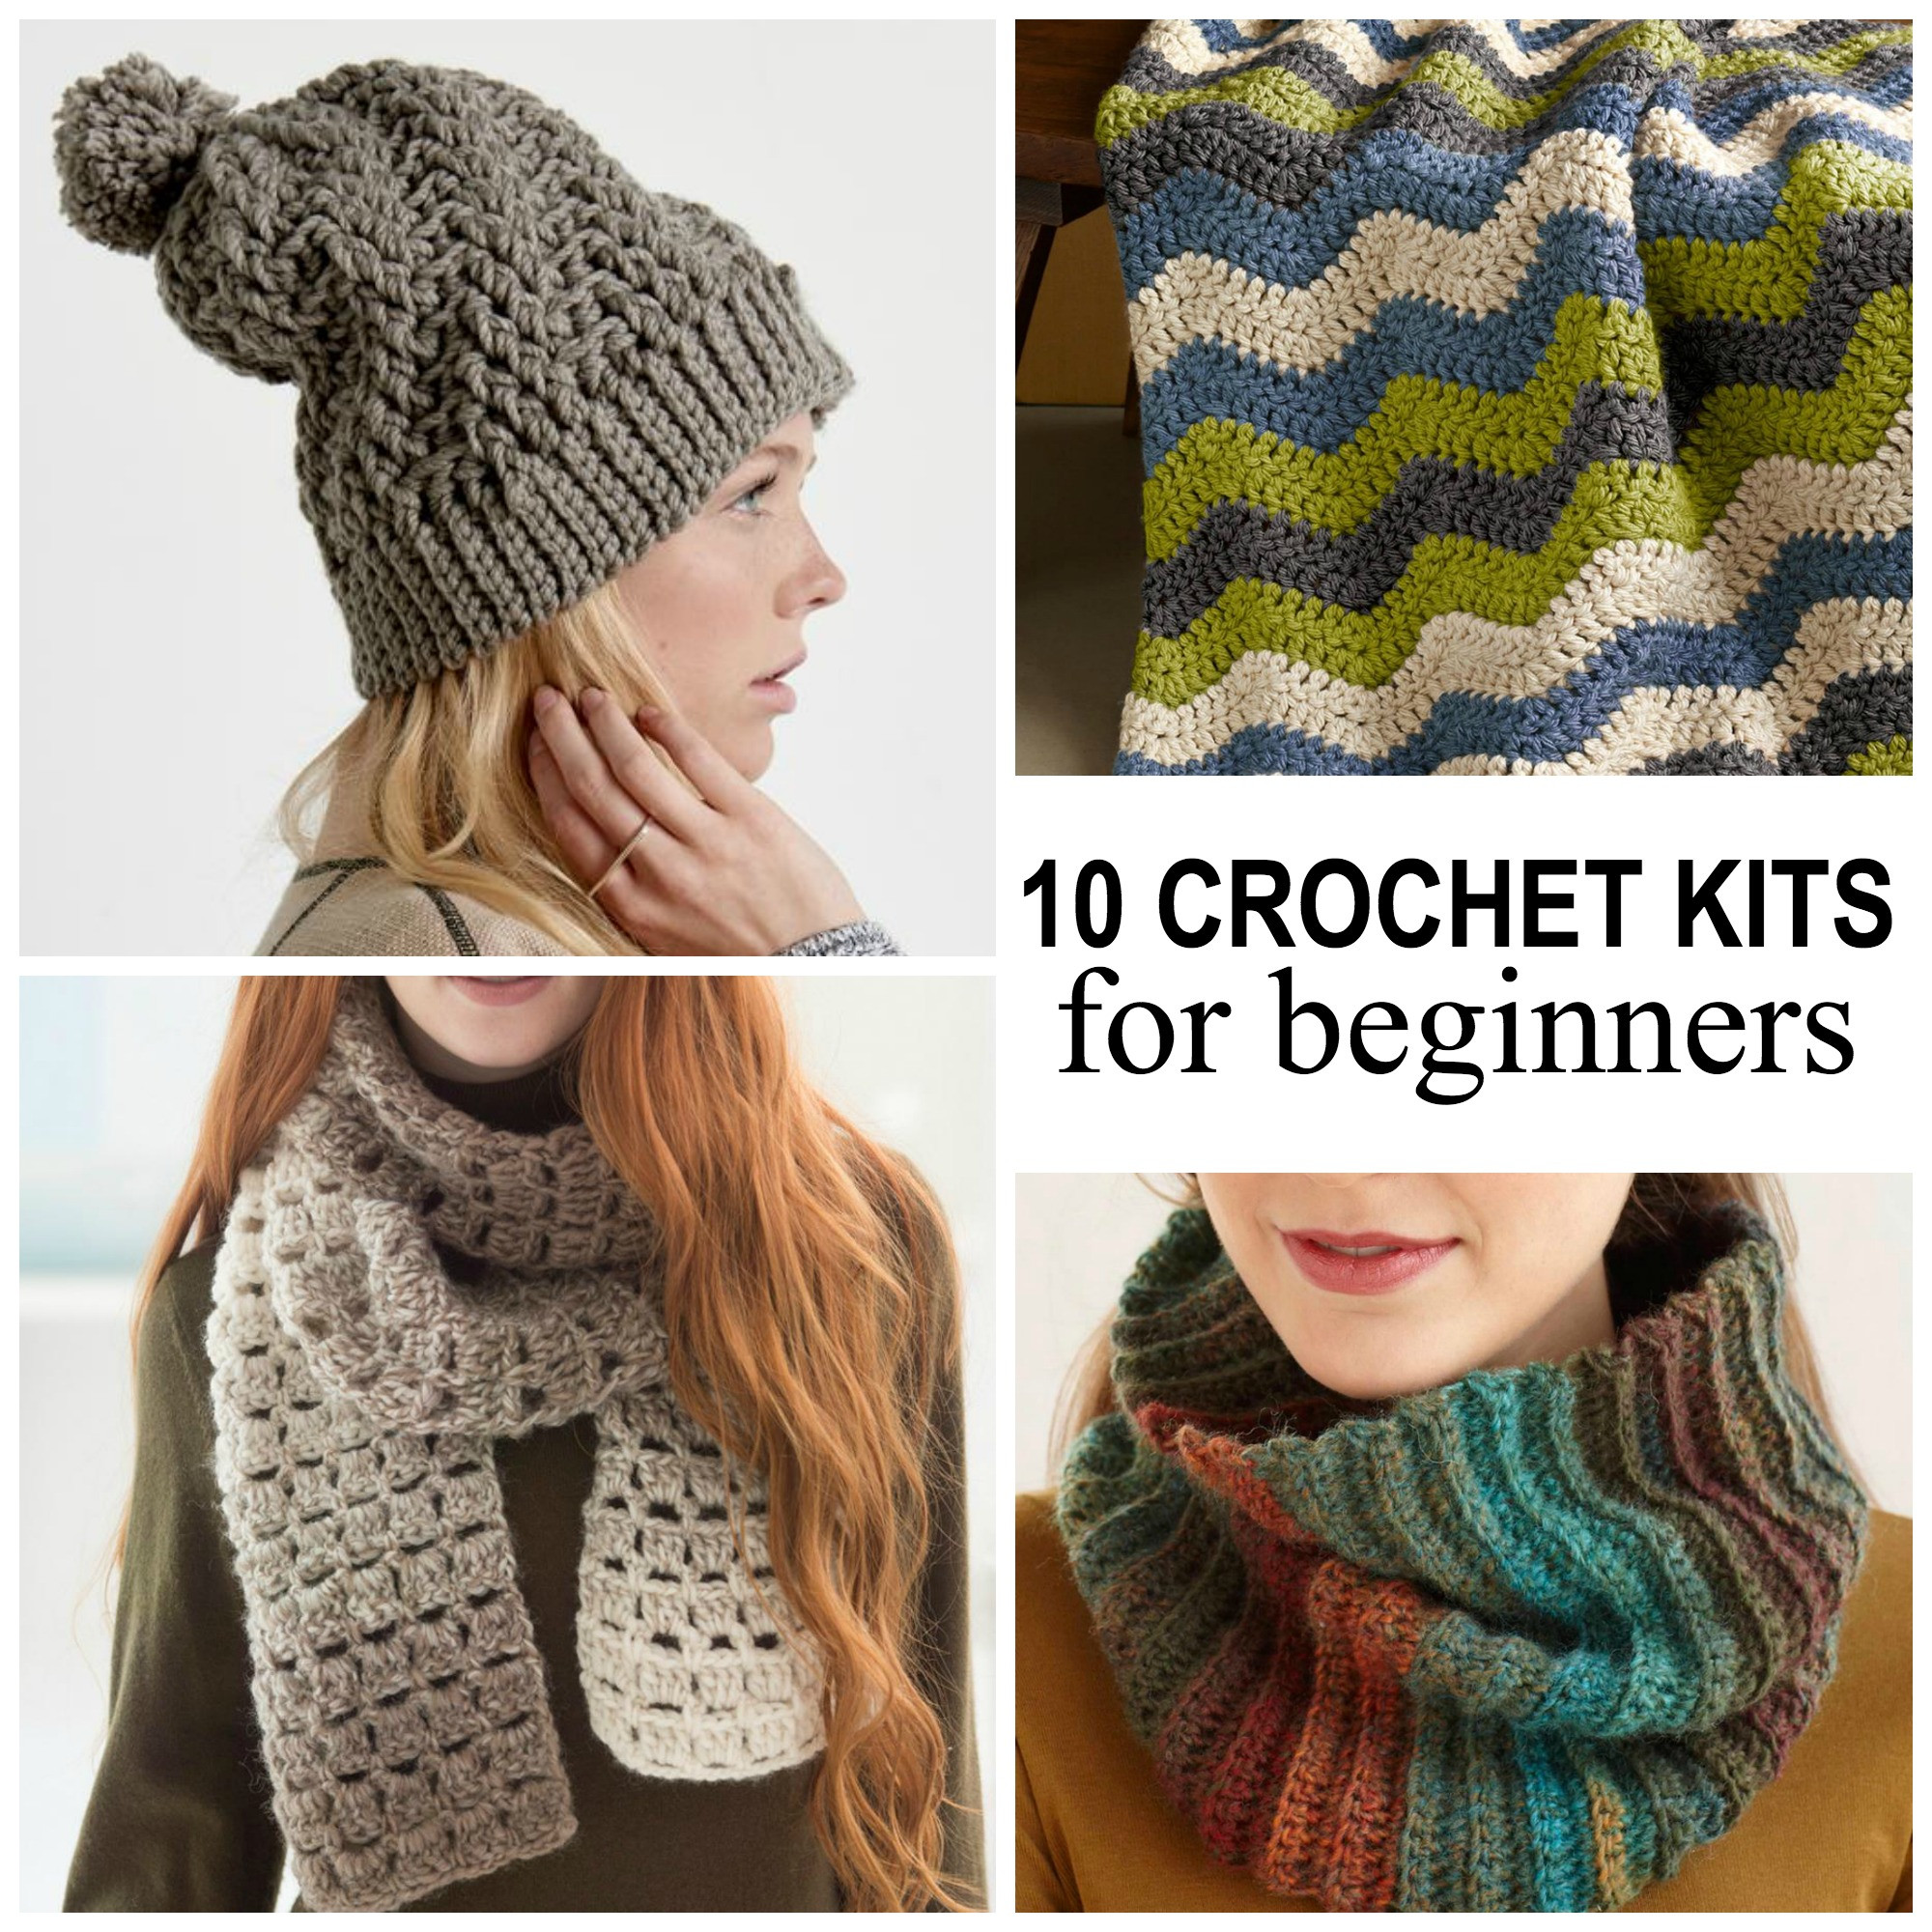 Awesome Scarf Patterns for Beginners Excellent Beginner Knitting Crochet Scarf Patterns for Beginners Of Perfect 47 Pictures Crochet Scarf Patterns for Beginners